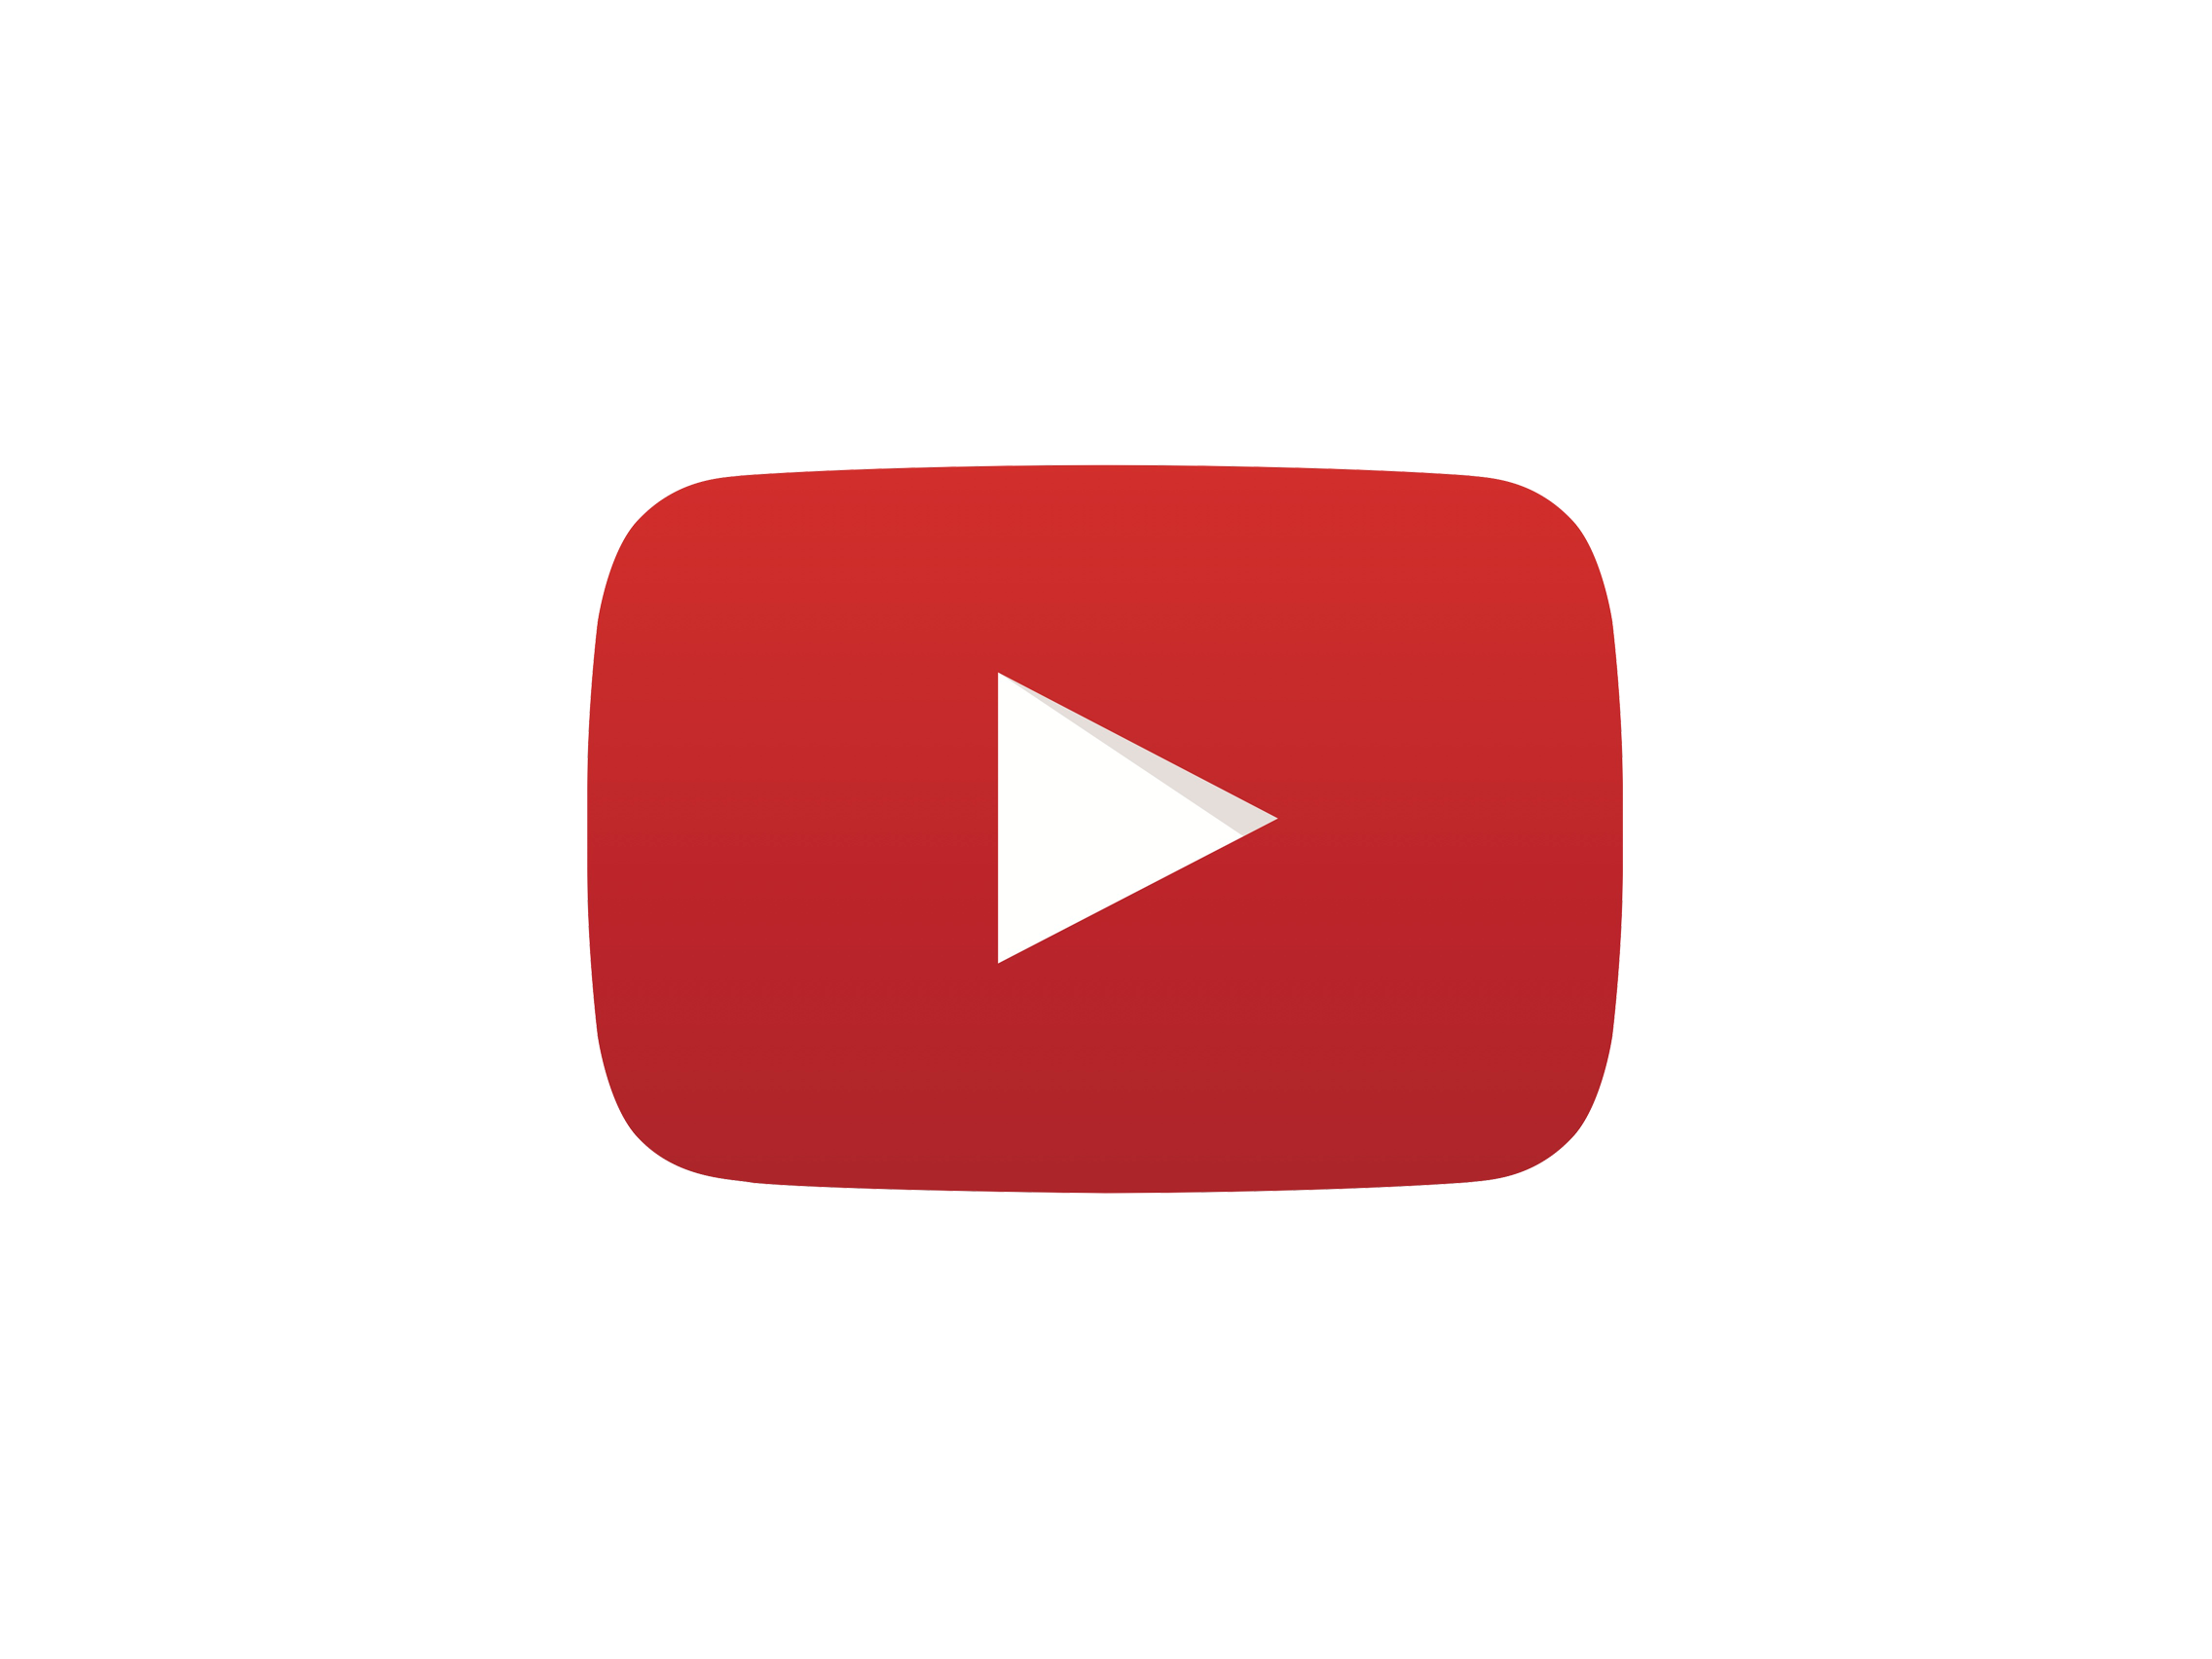 Picture Button Youtube Icon Free Transparent Image HQ PNG Image